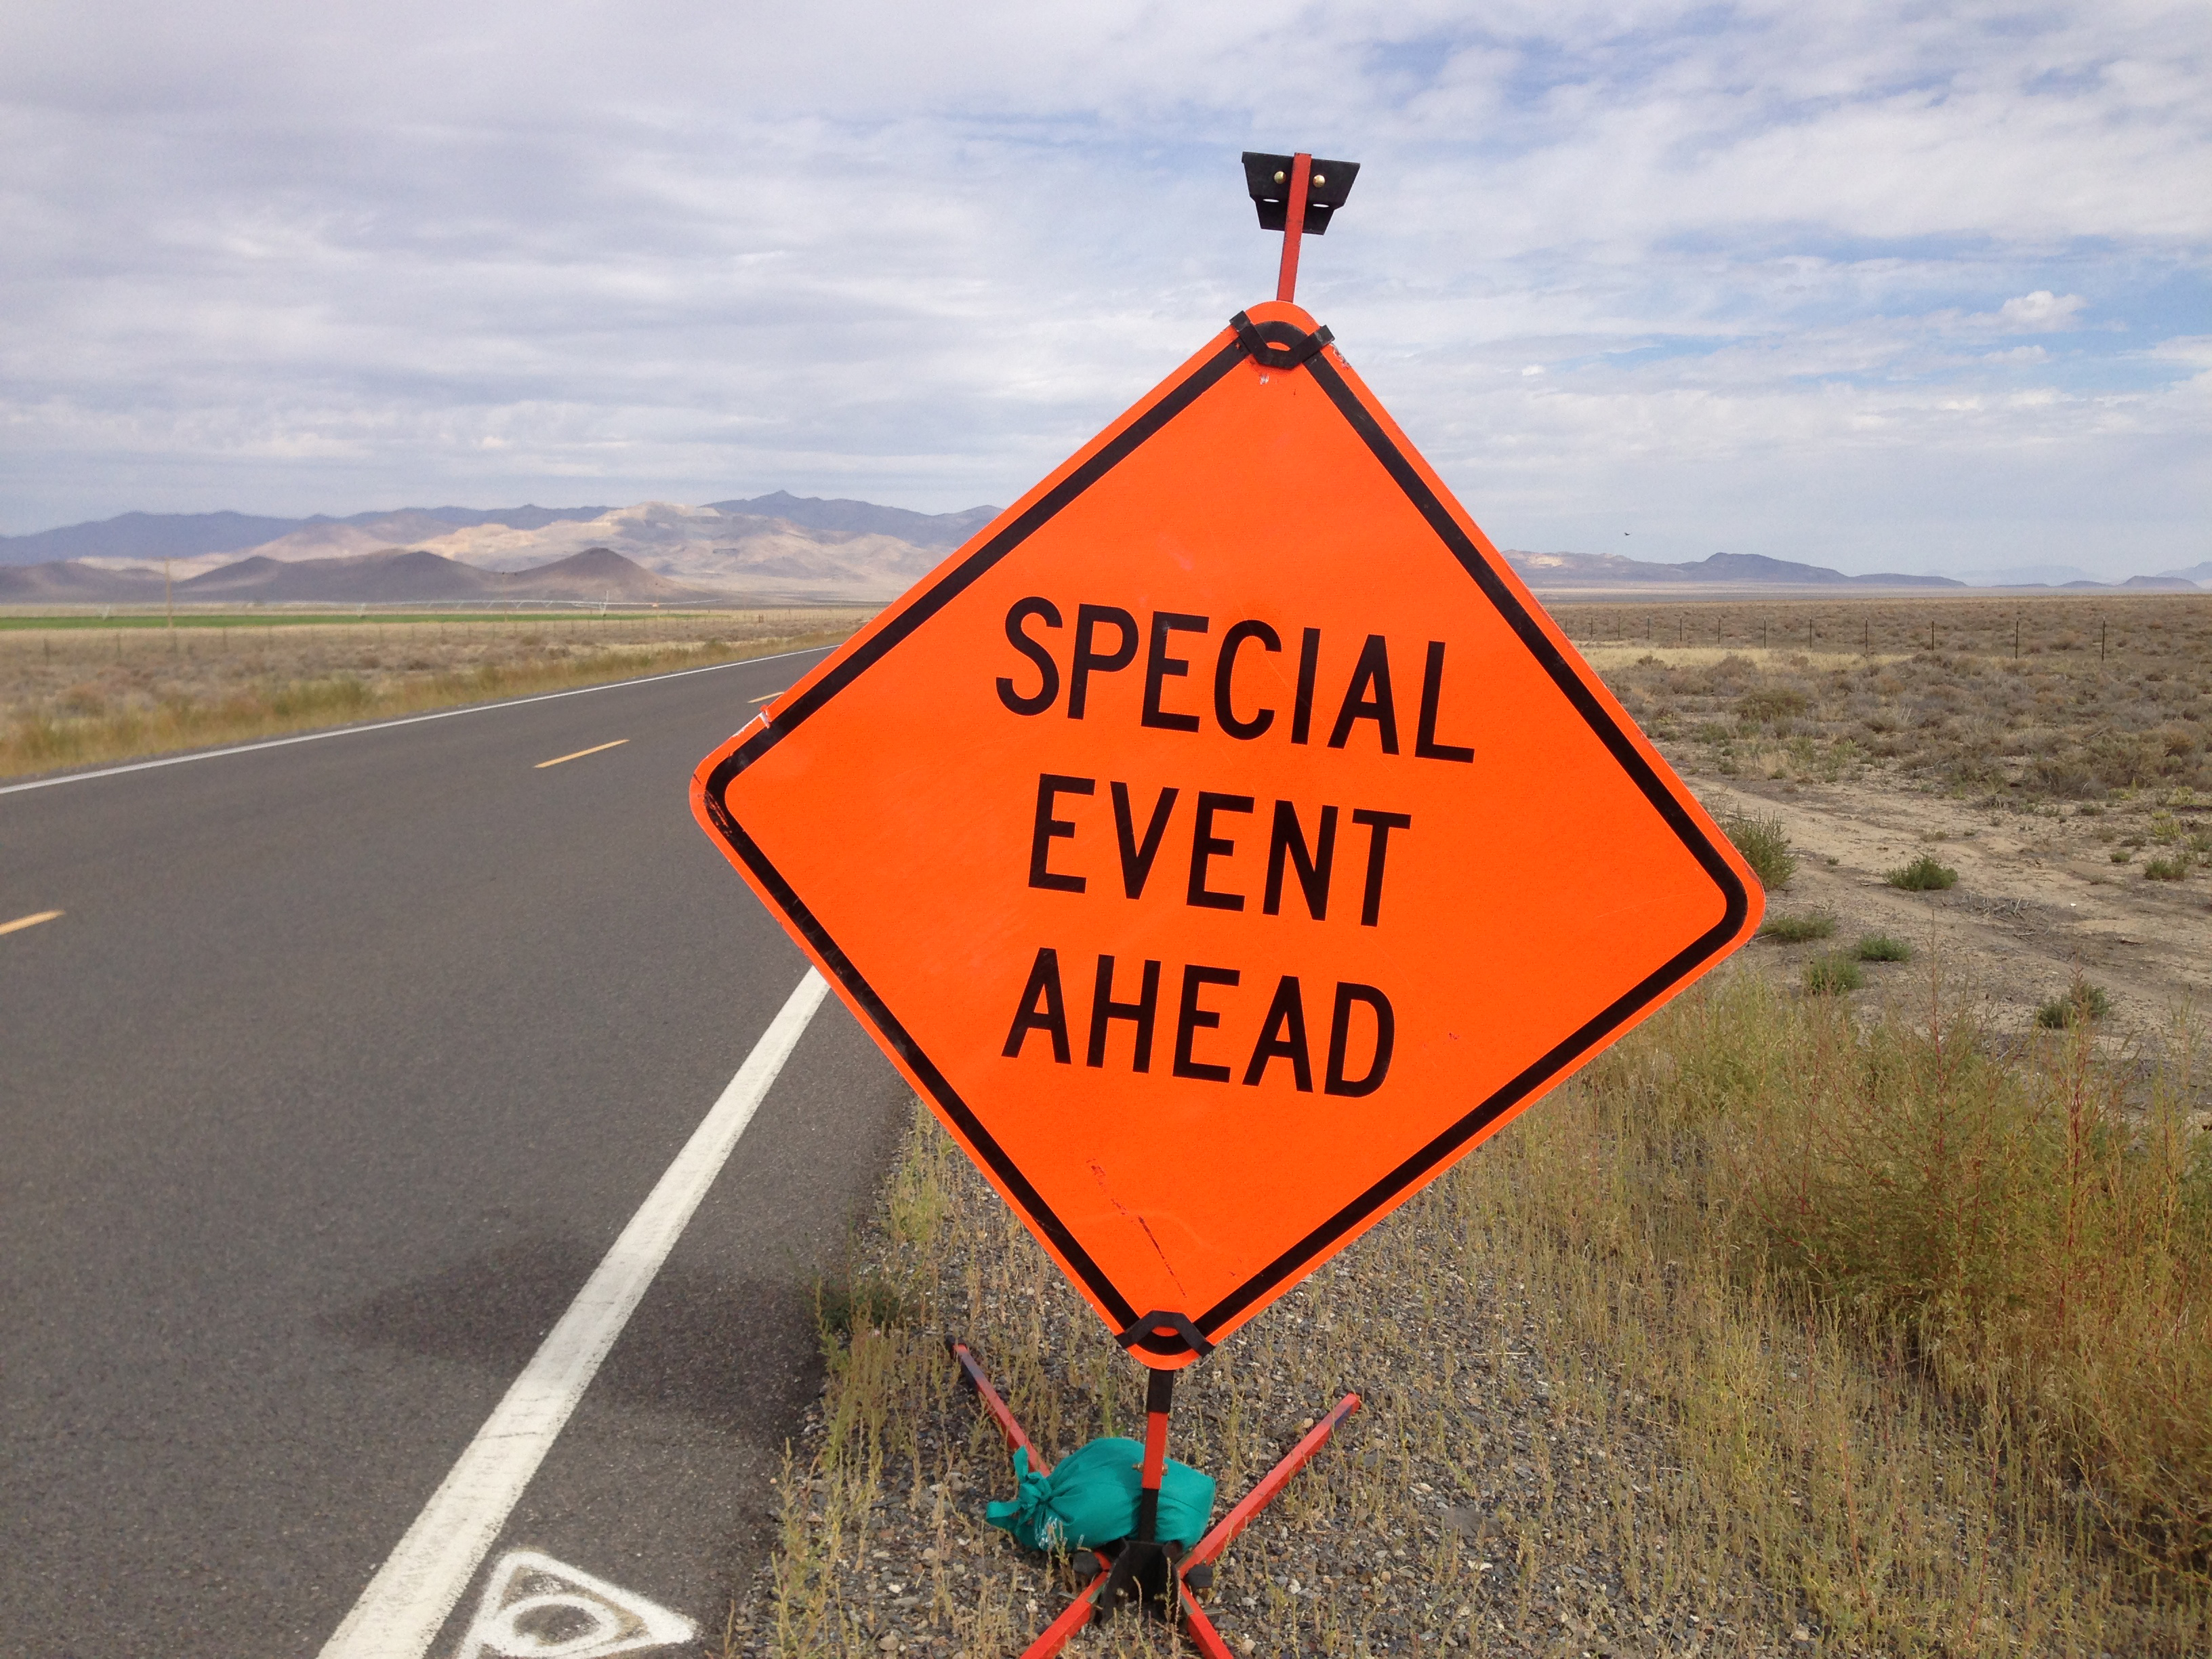 """Special event ahead"" sign."